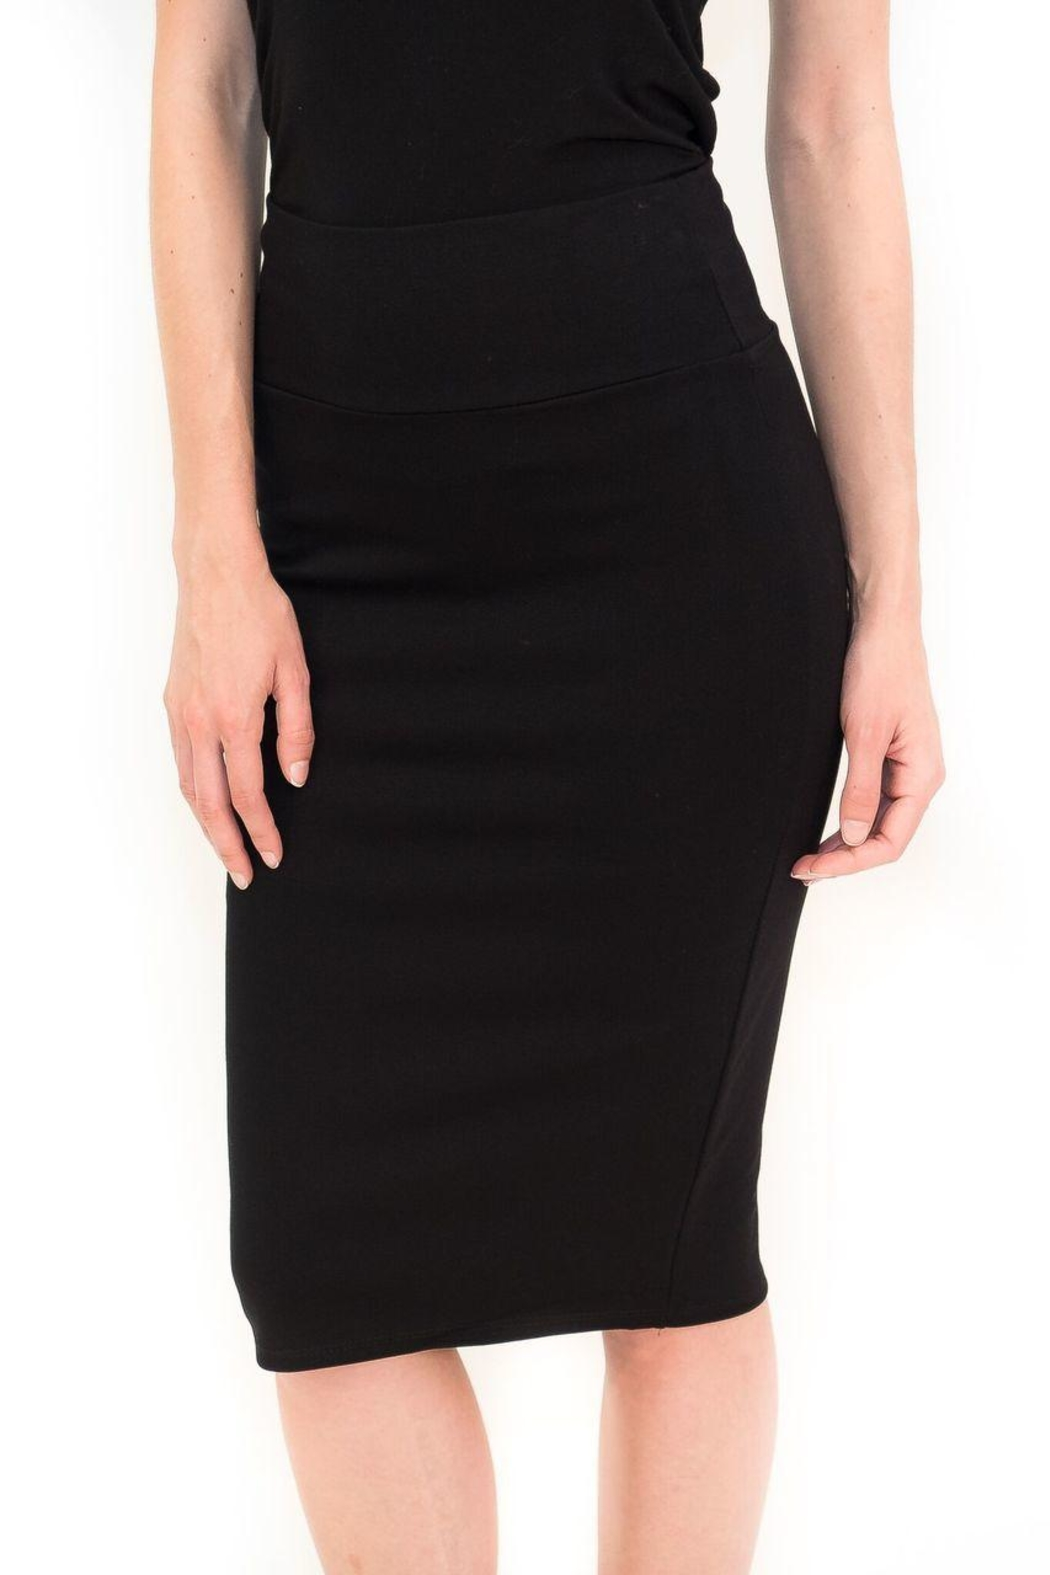 Maya's Place Knee-Length Pencil Skirt - Front Cropped Image